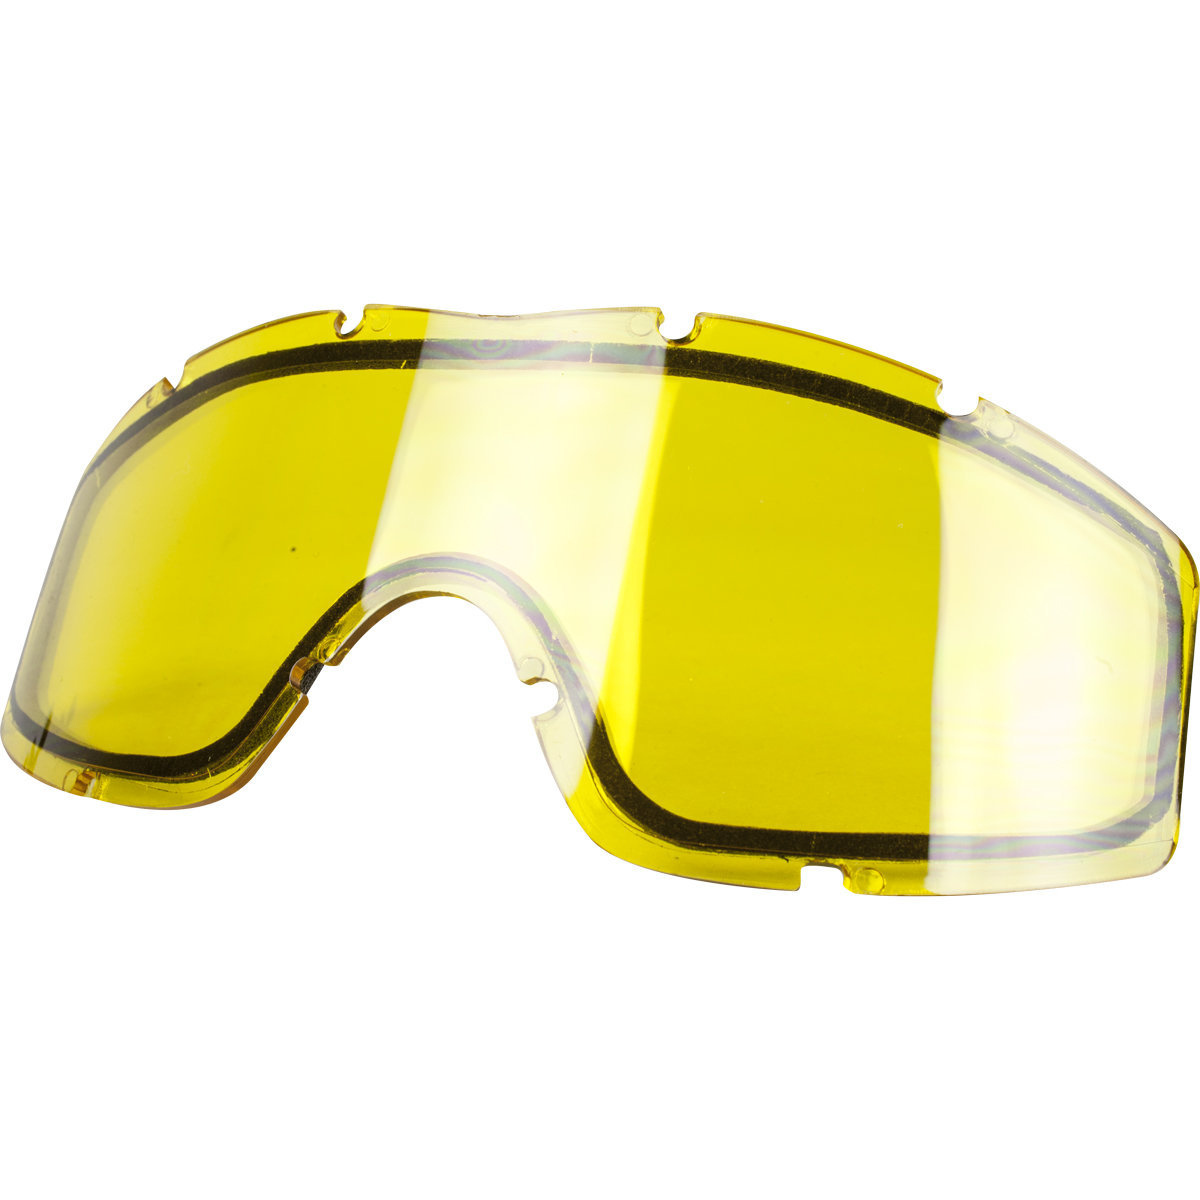 View larger image of Valken Tango Thermal Airsoft Goggles